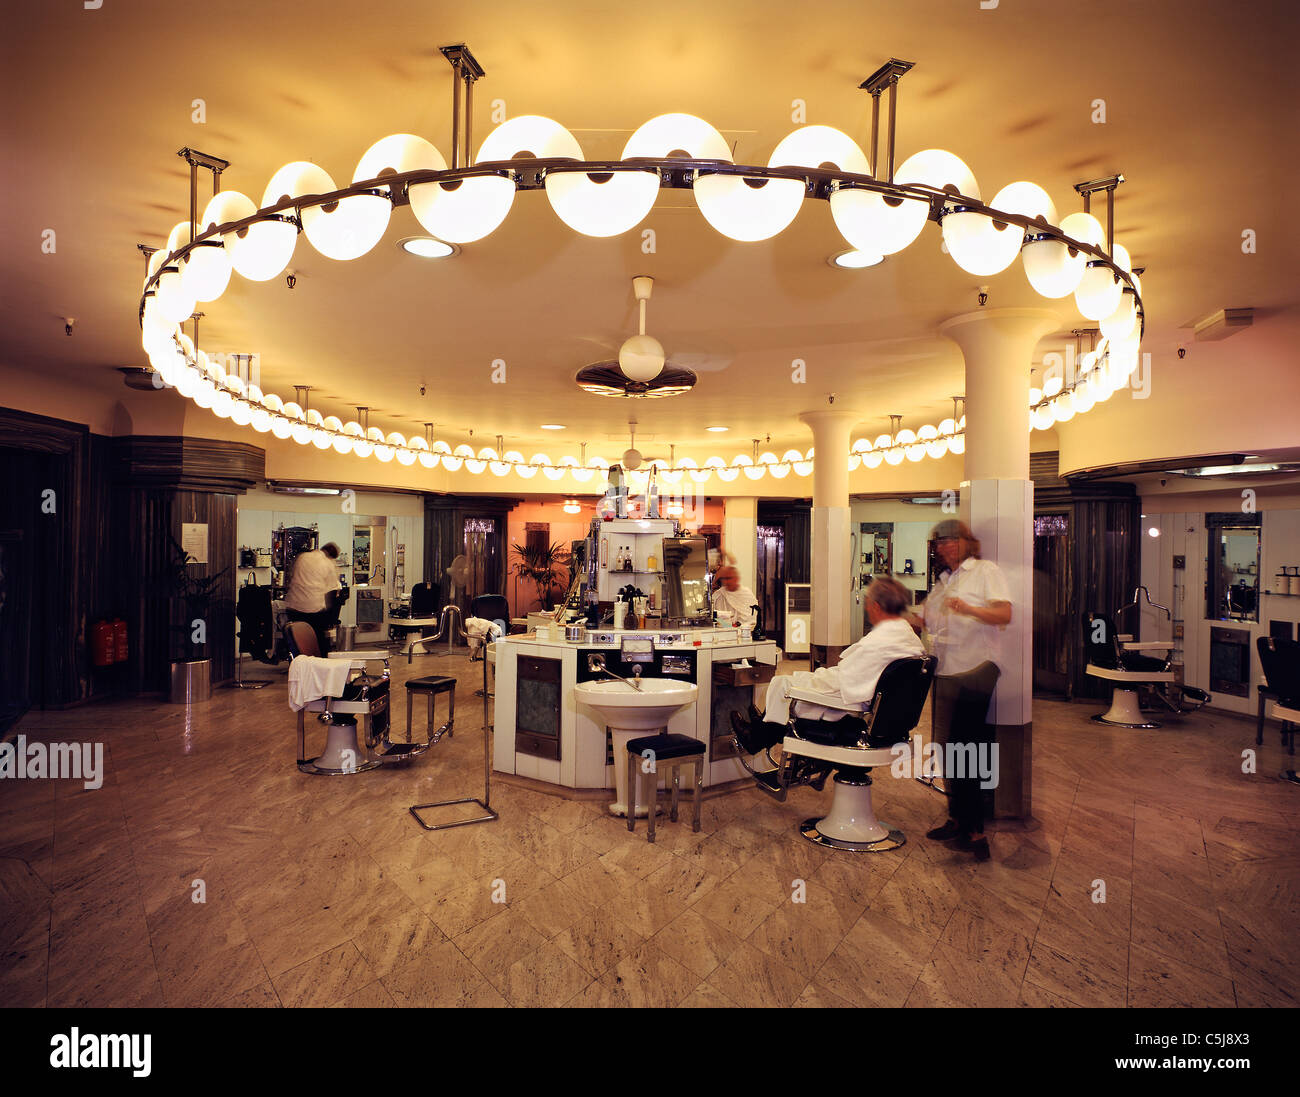 Austin S Barber Shop In The Basement Of The Austin Reed Department Stock Photo Alamy